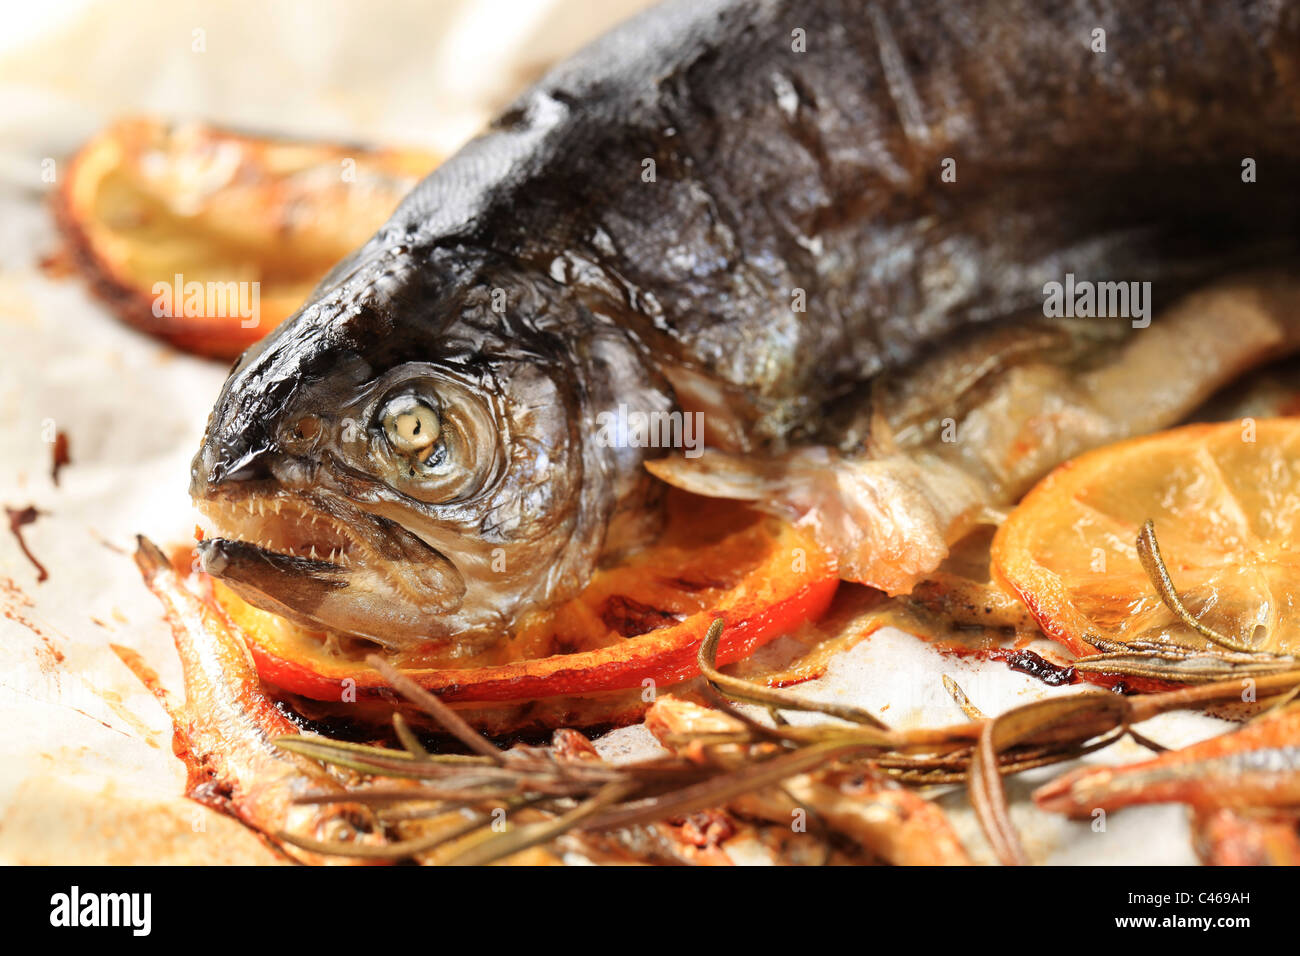 Pan fried trout, anchovies and lemon - detail - Stock Image